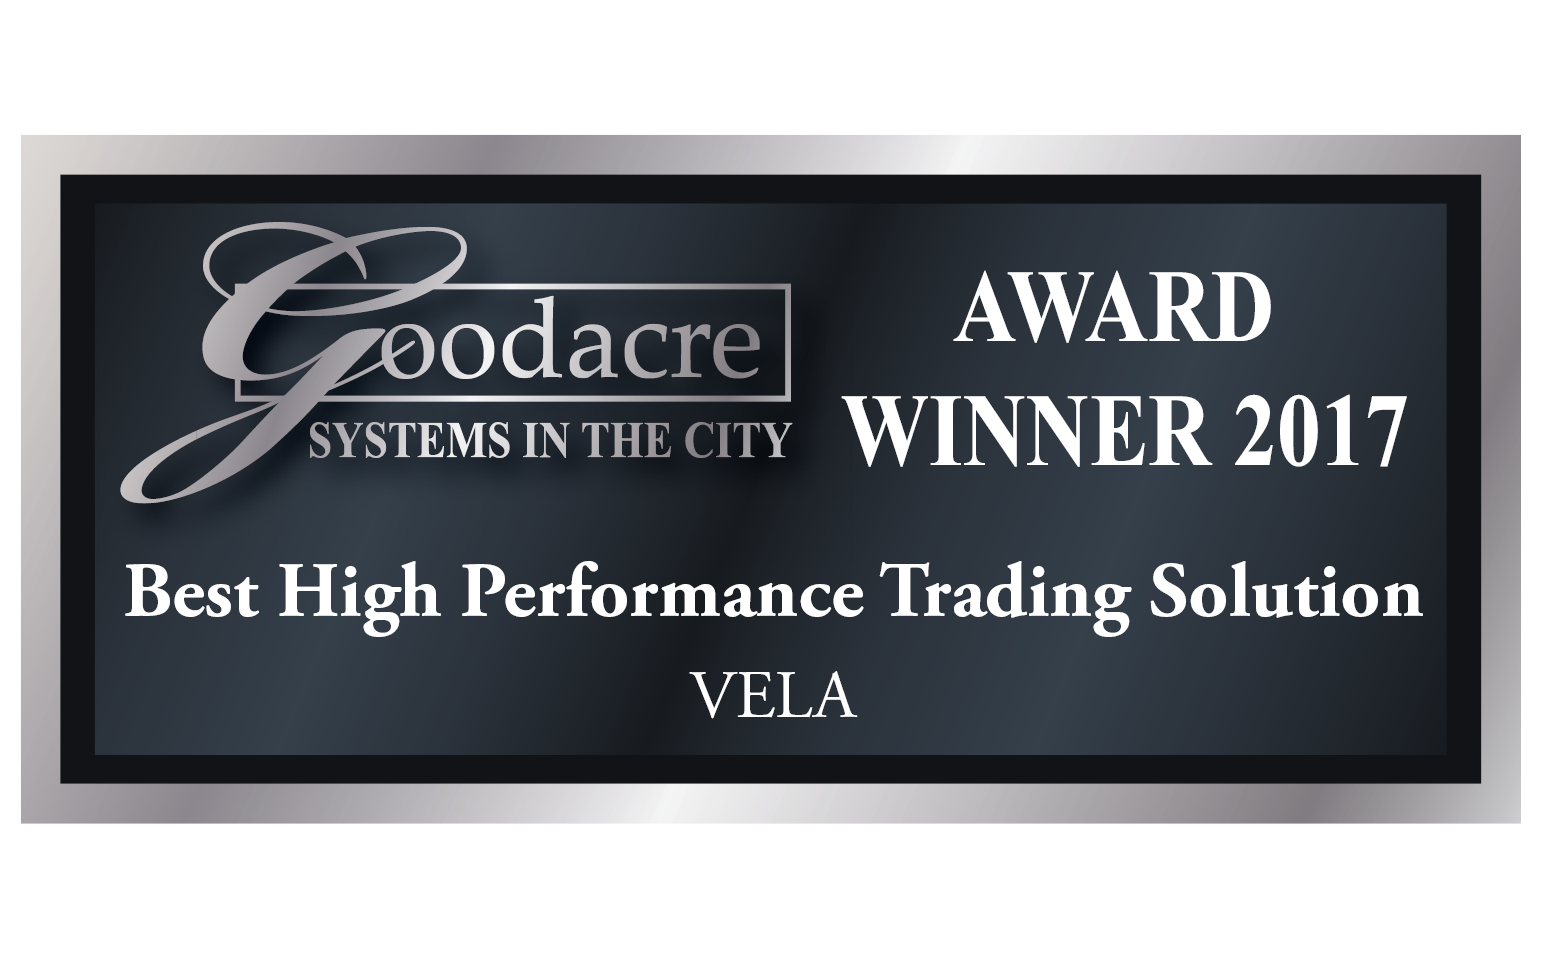 Best High Performance Trading Solution